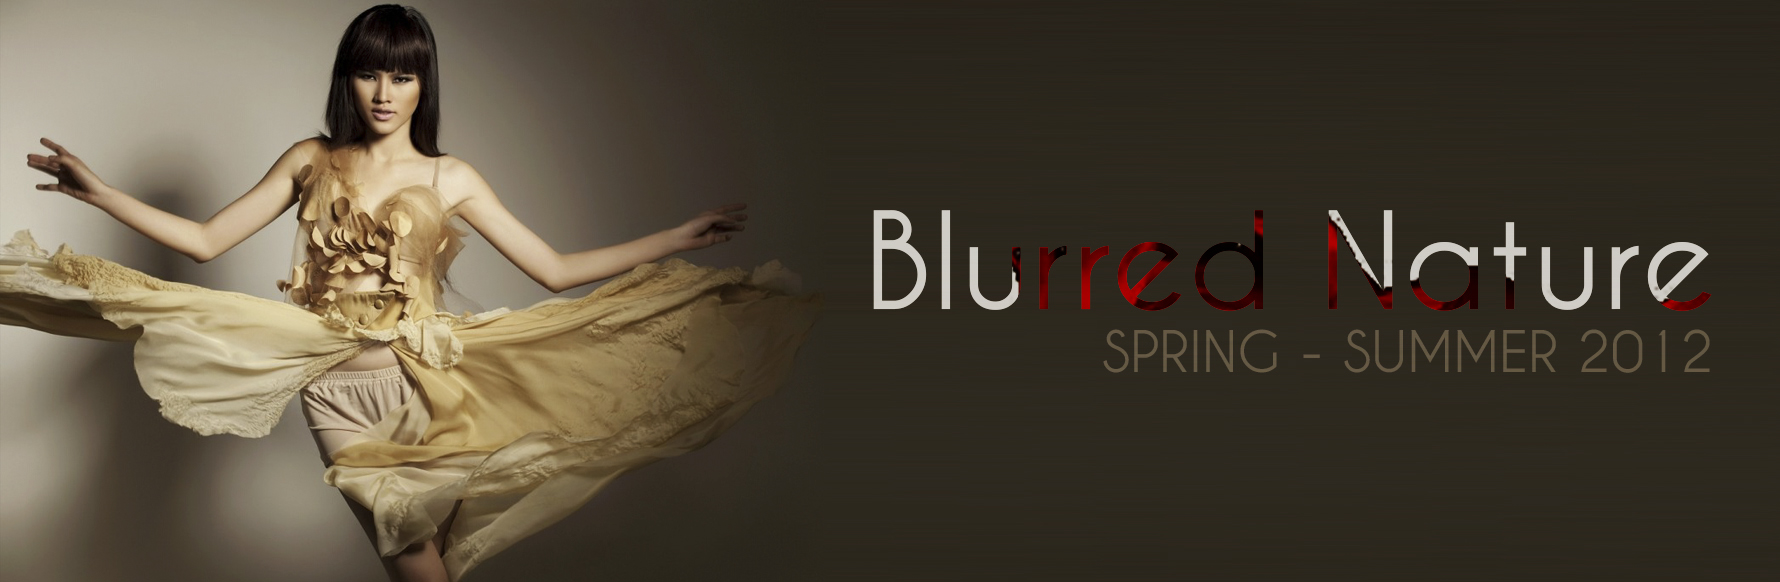 SPRING – SUMMER 2012: BLURRED NATURE